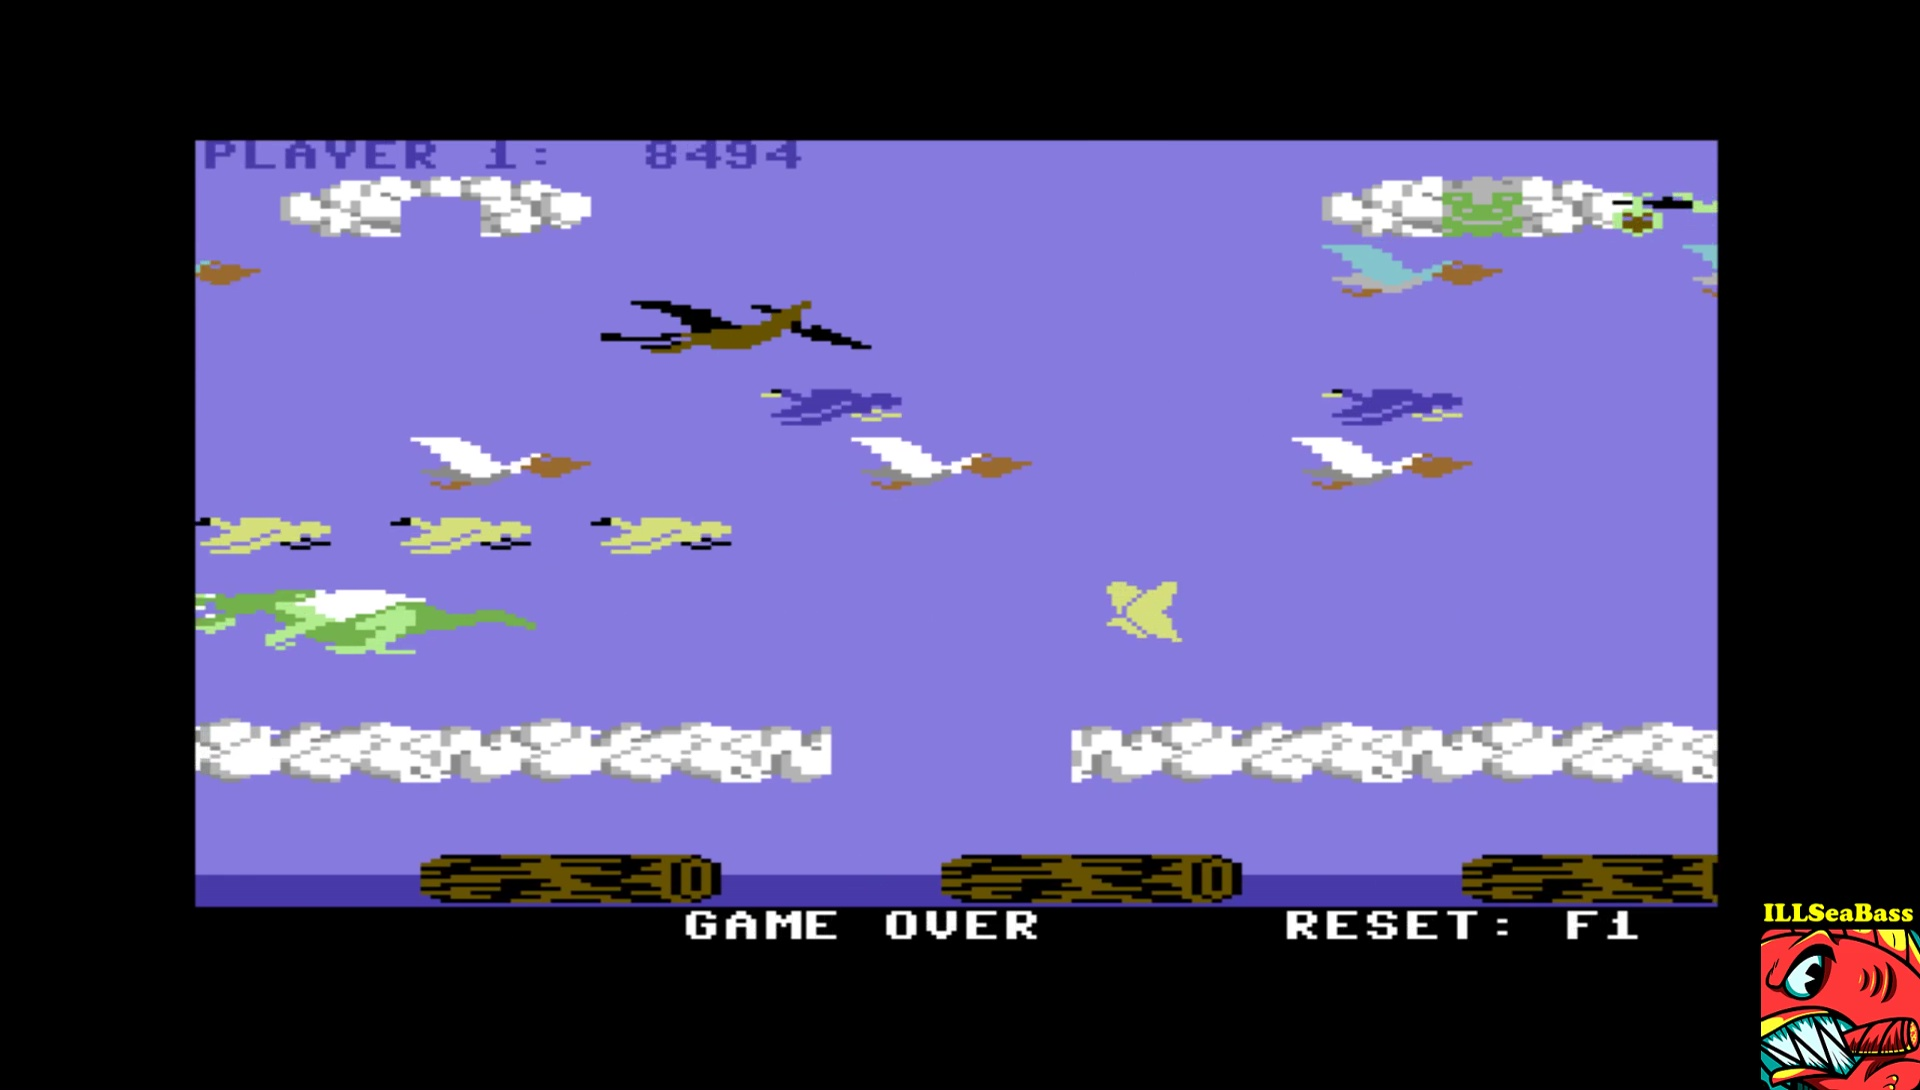 ILLSeaBass: Frogger II - Threedeep: Hard (Commodore 64 Emulated) 8,494 points on 2017-03-21 13:04:11